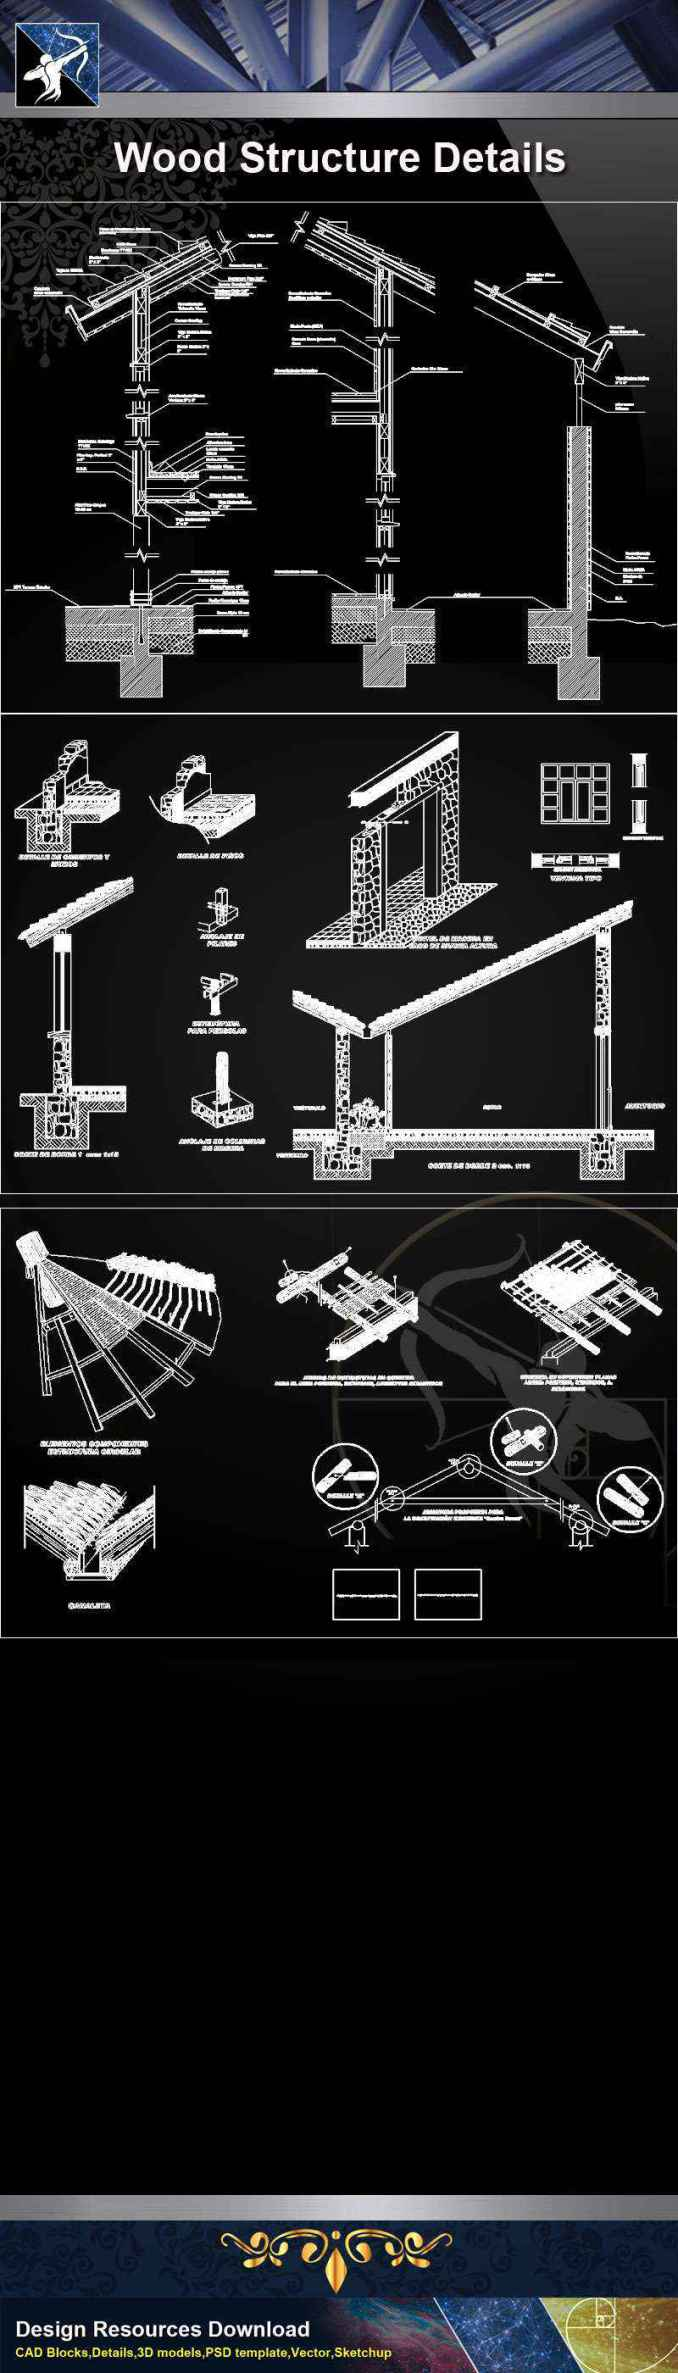 【Architecture CAD Details Collections】Wood Structure CAD Details (Recommand)